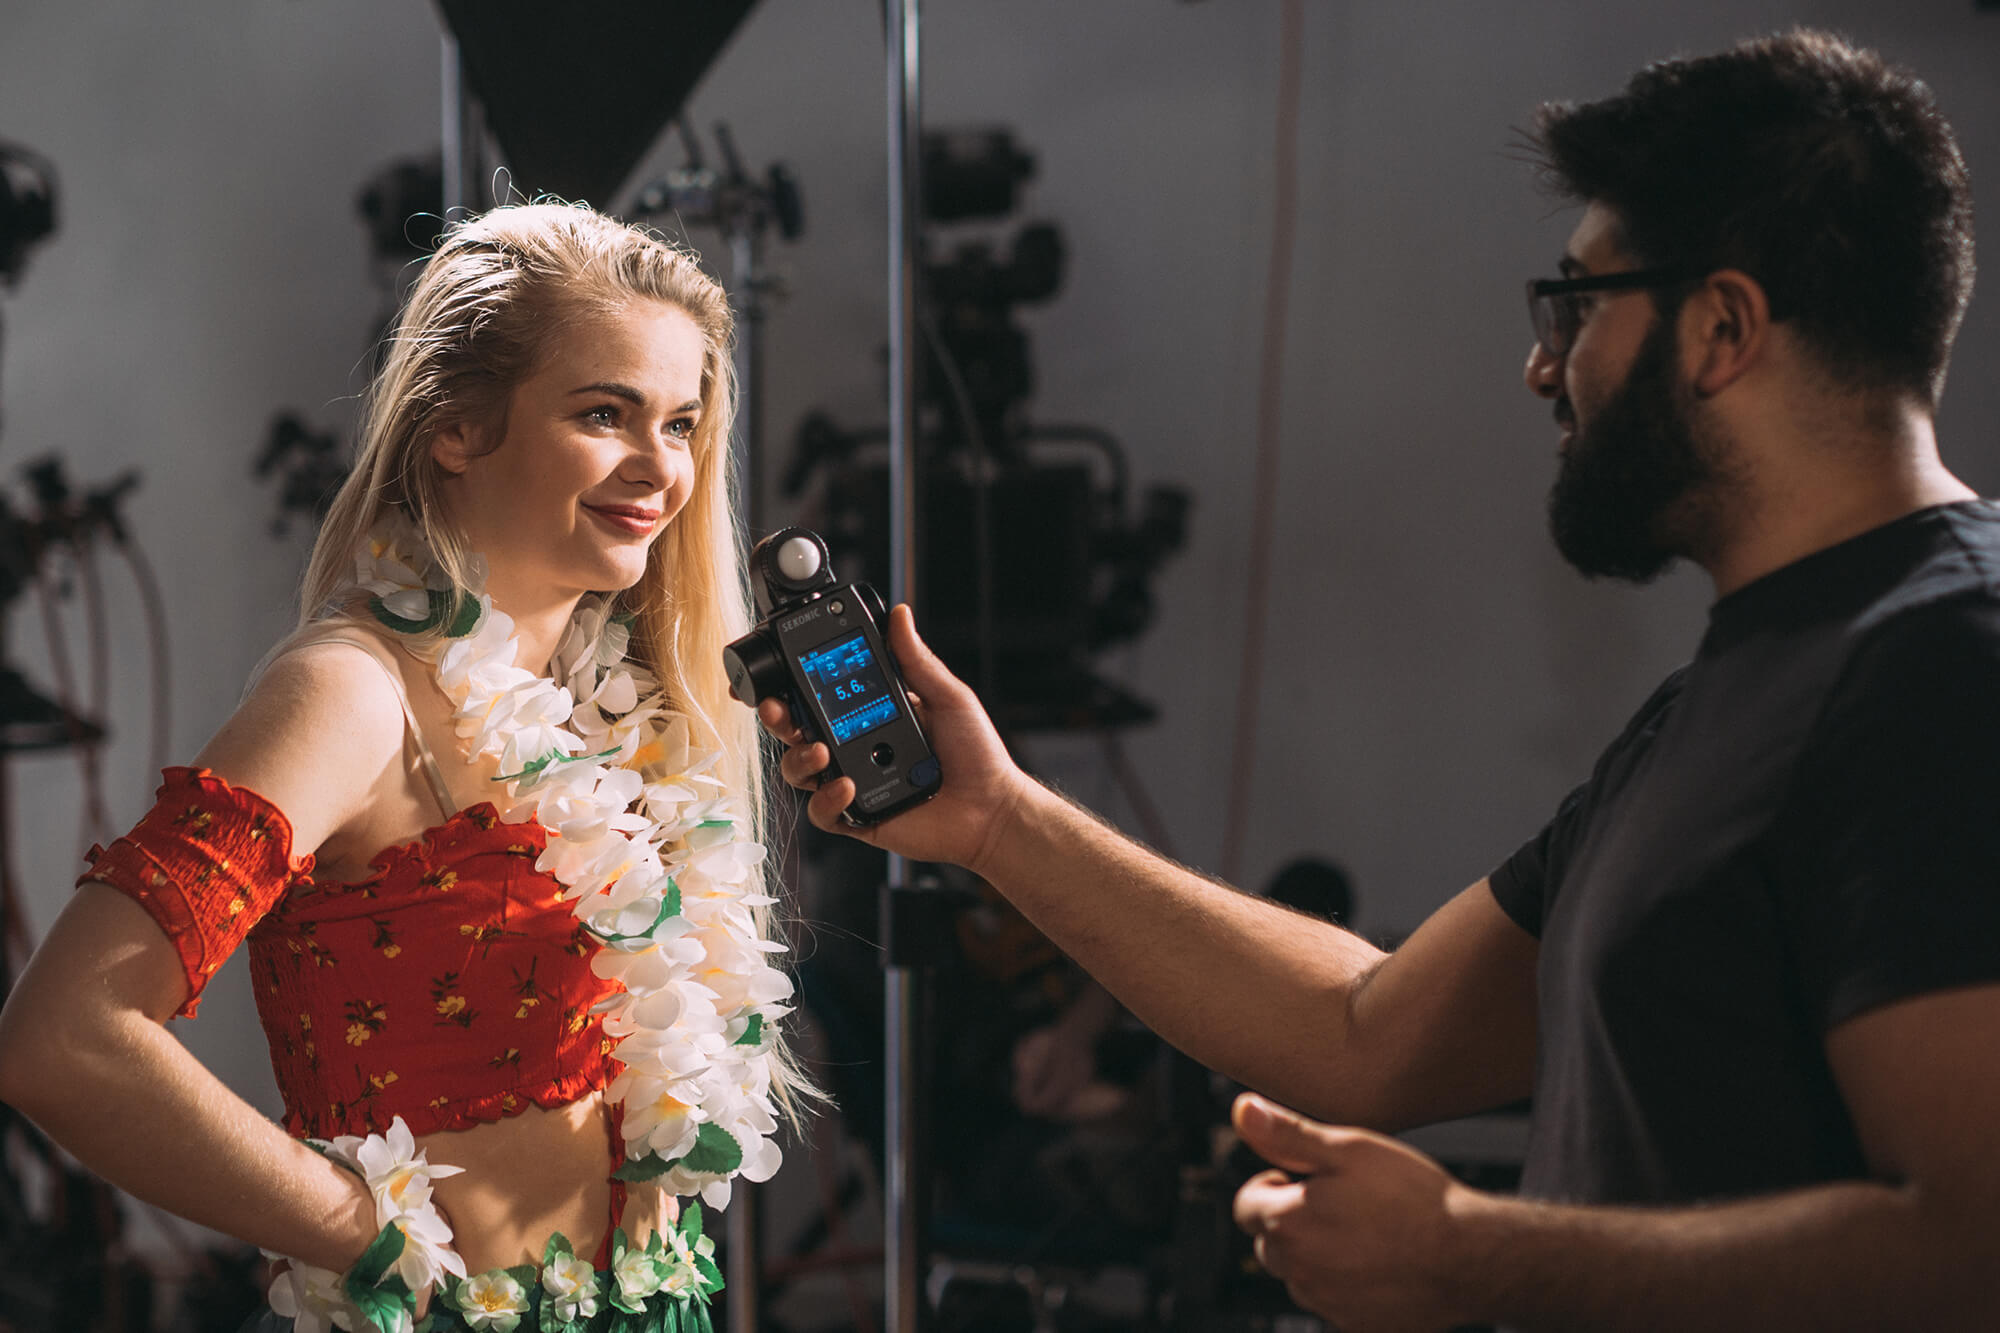 A female dressed in Hawaiian attire goes through final checks with a director before a shoot begins